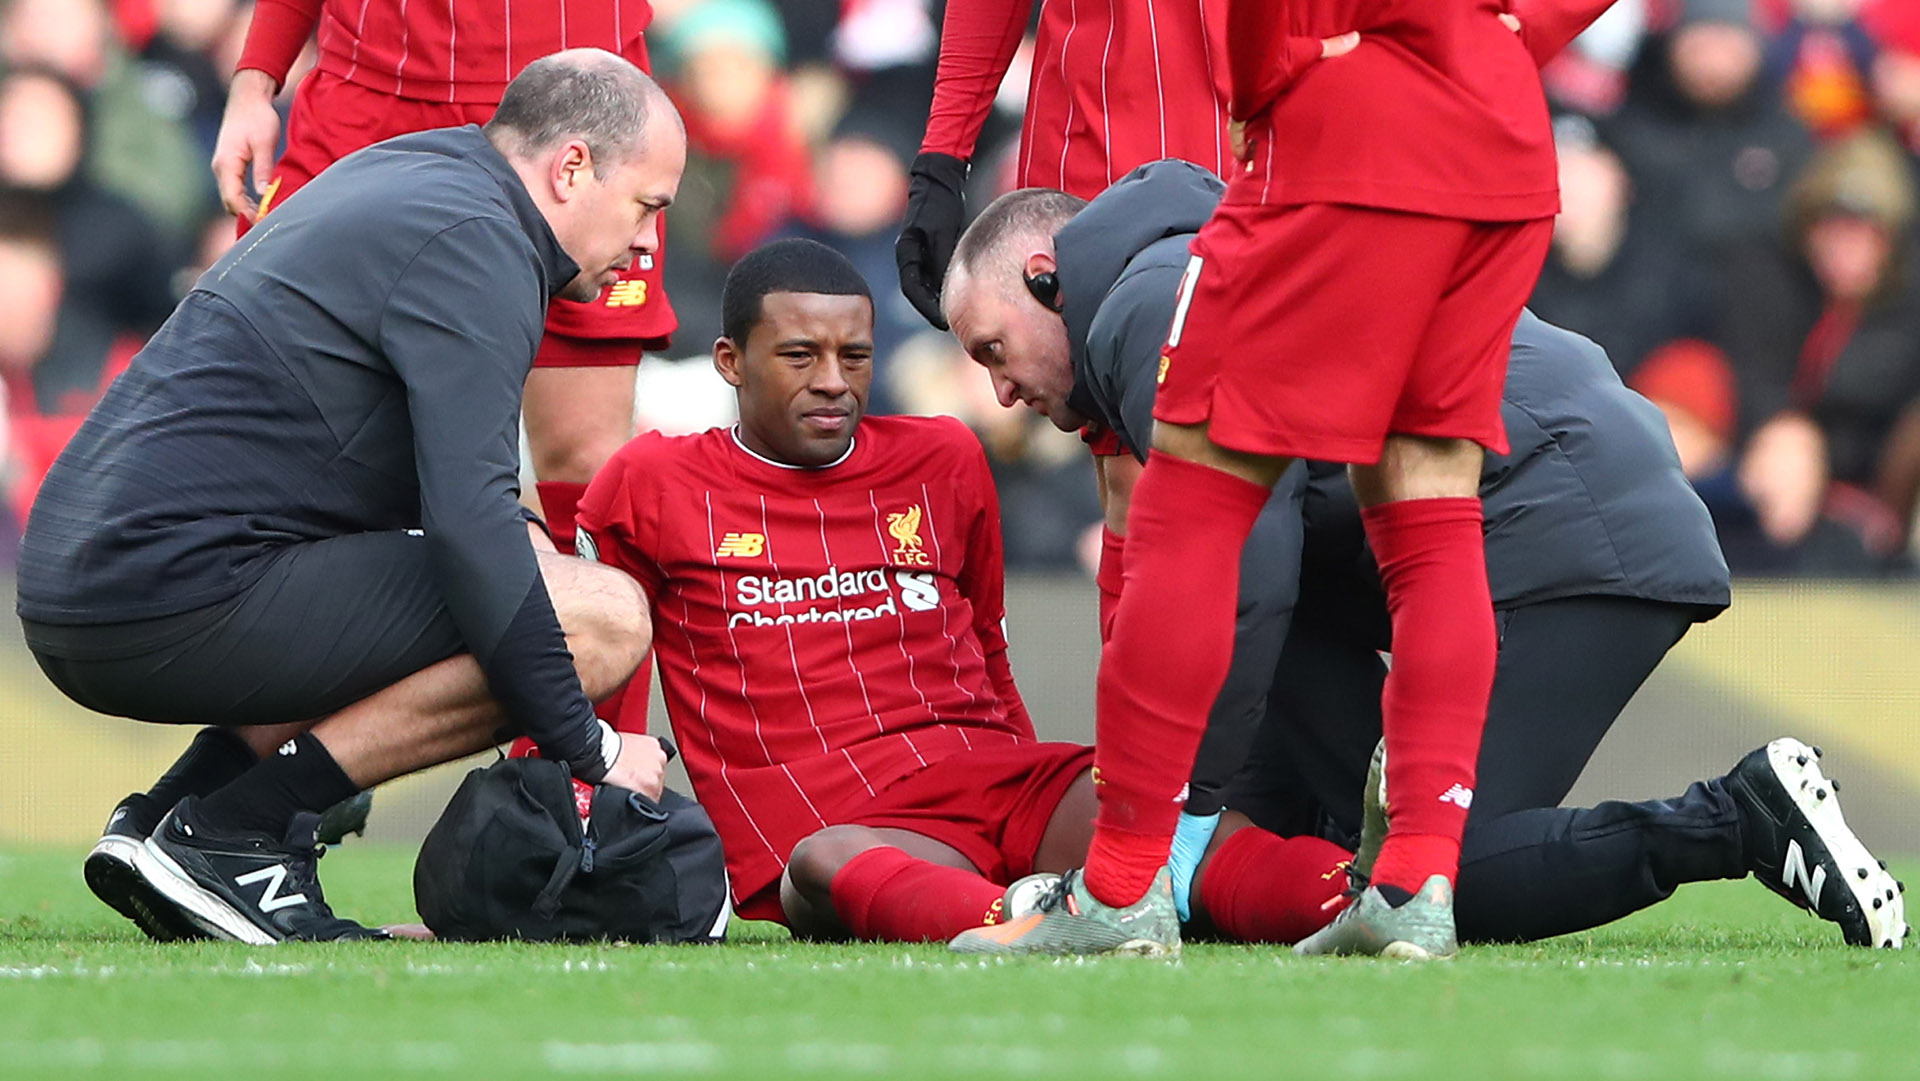 Wijnaldum limps off during Liverpool's clash with Watford due to apparent hamstring injury